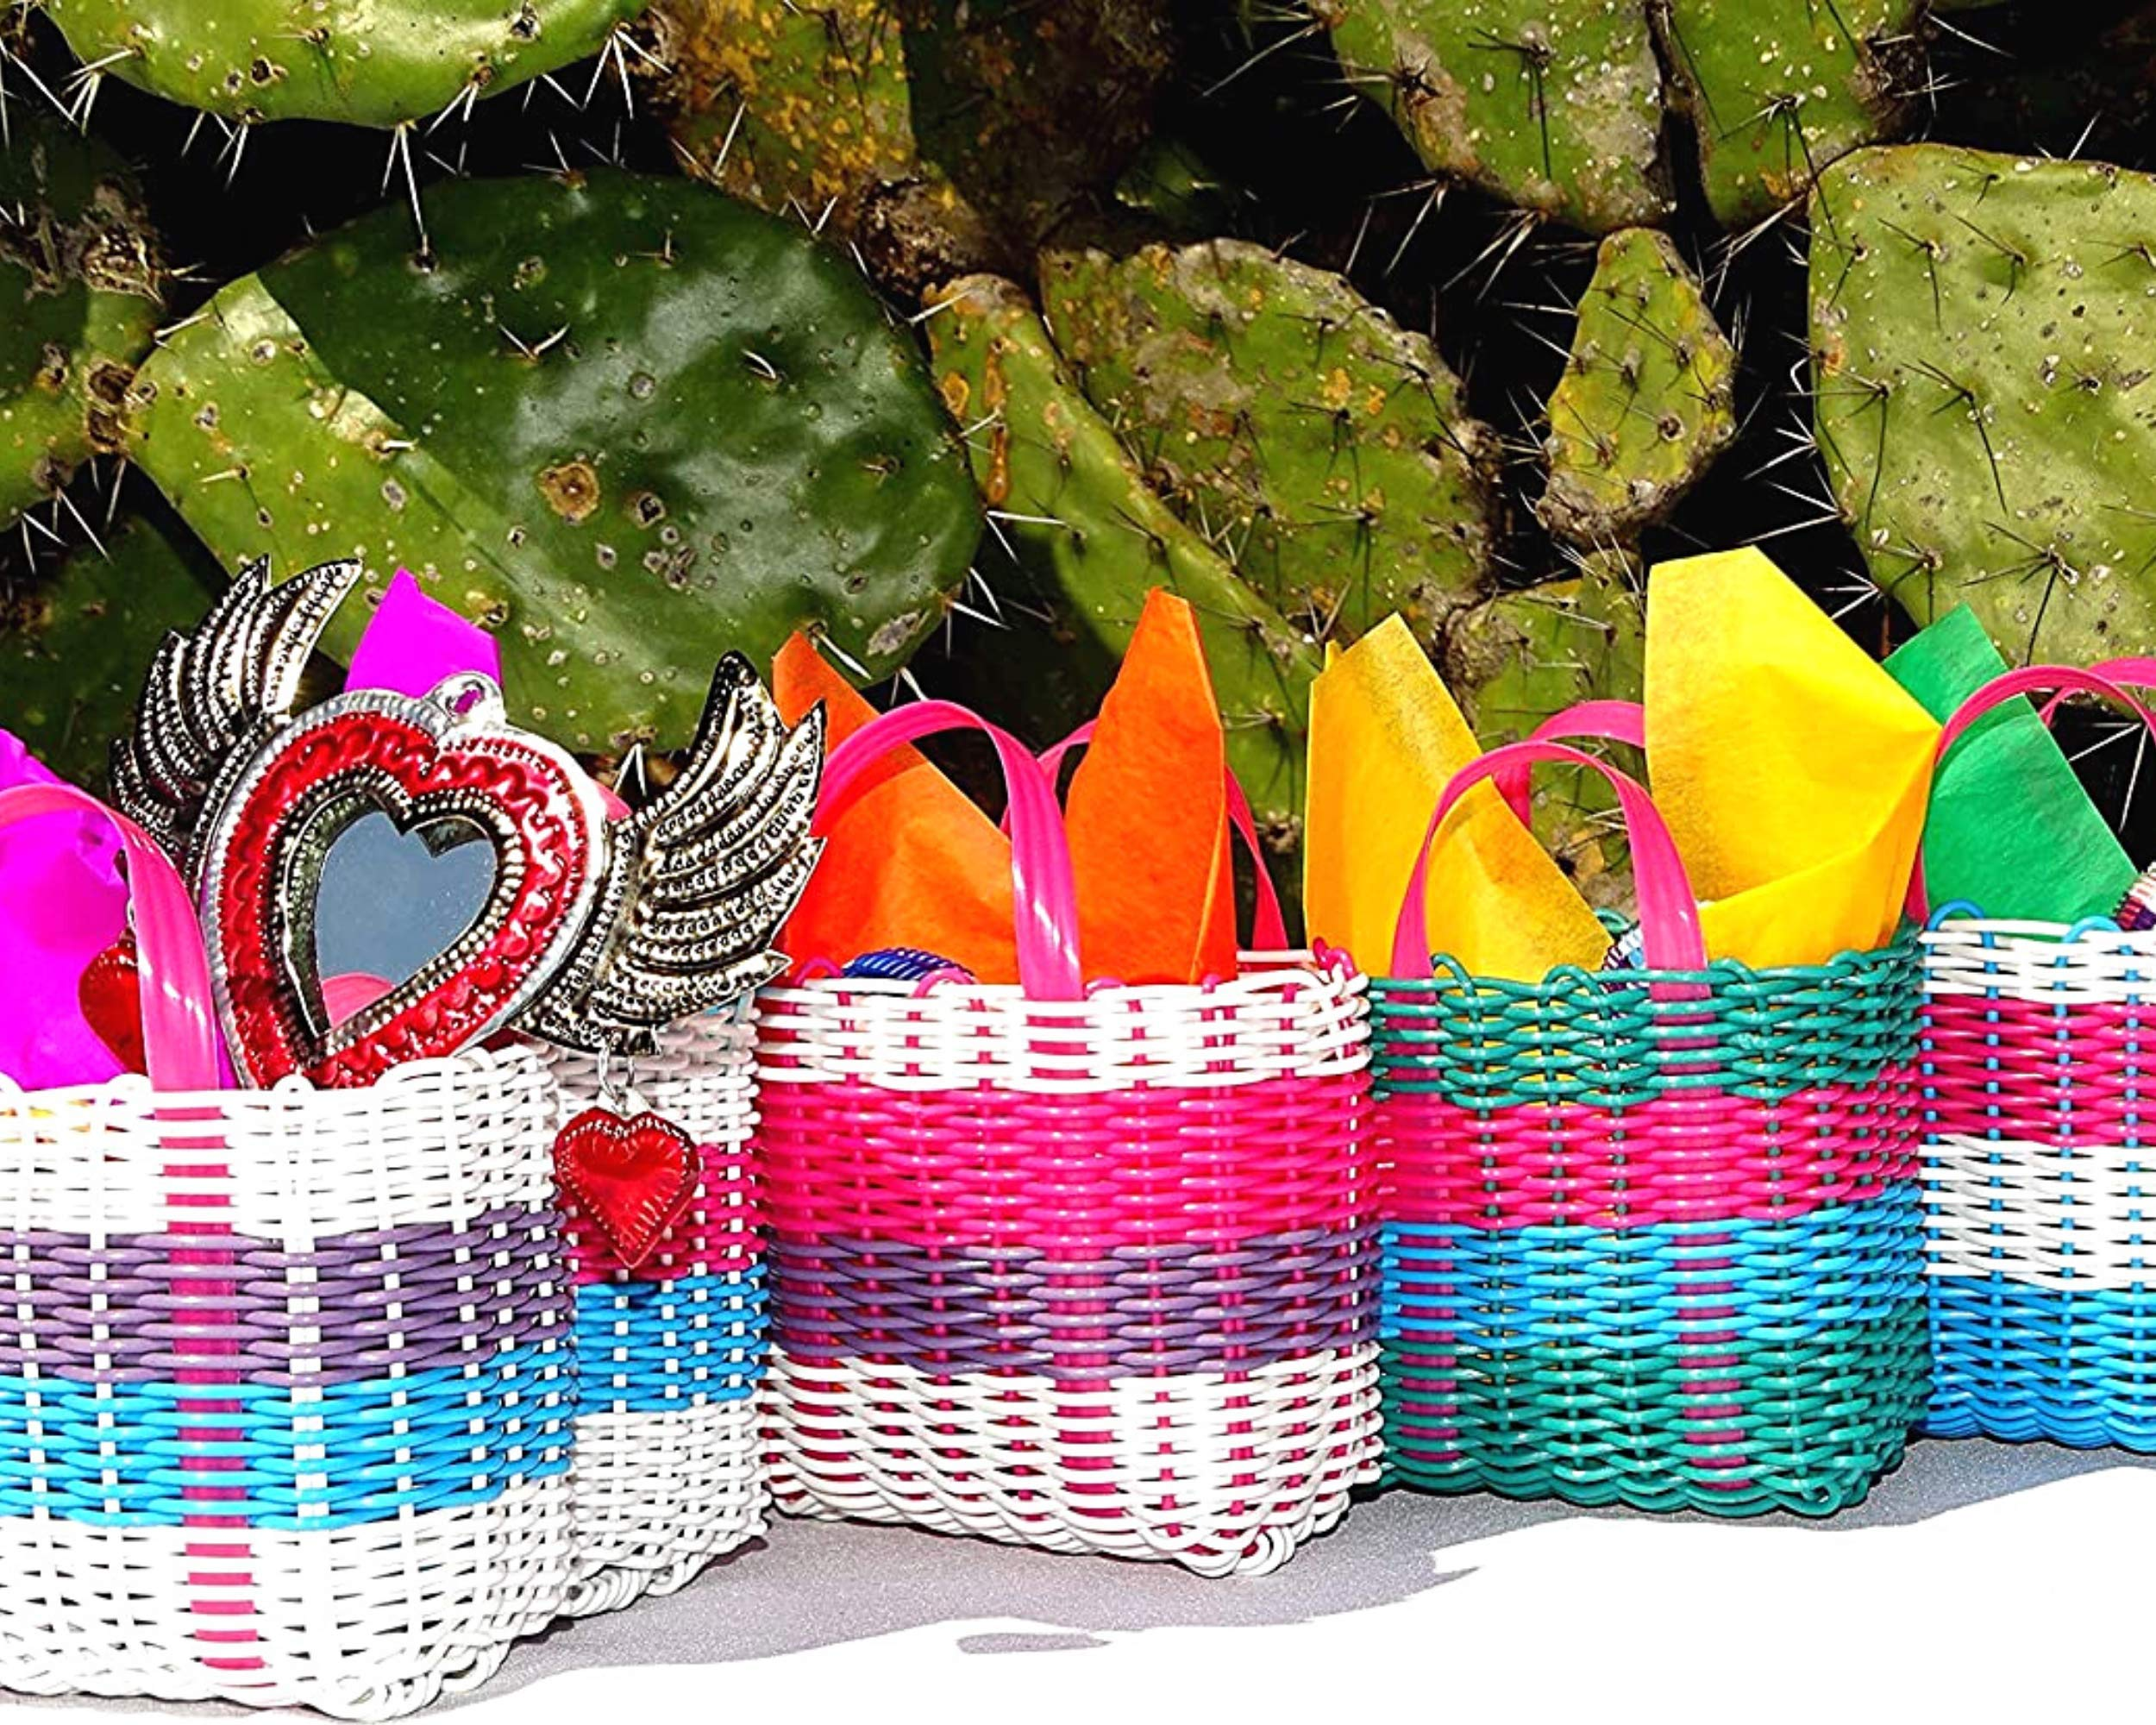 Mexican Candy Bags for Fiestas, Set of 5 Mini Mercado Totes, Fiesta Party Favors, Mexican Party Decorations, Coco Cinco de Mayo Party Supplies, Authentic Mexican Gift Bags Small, Bolsitas para Dulces